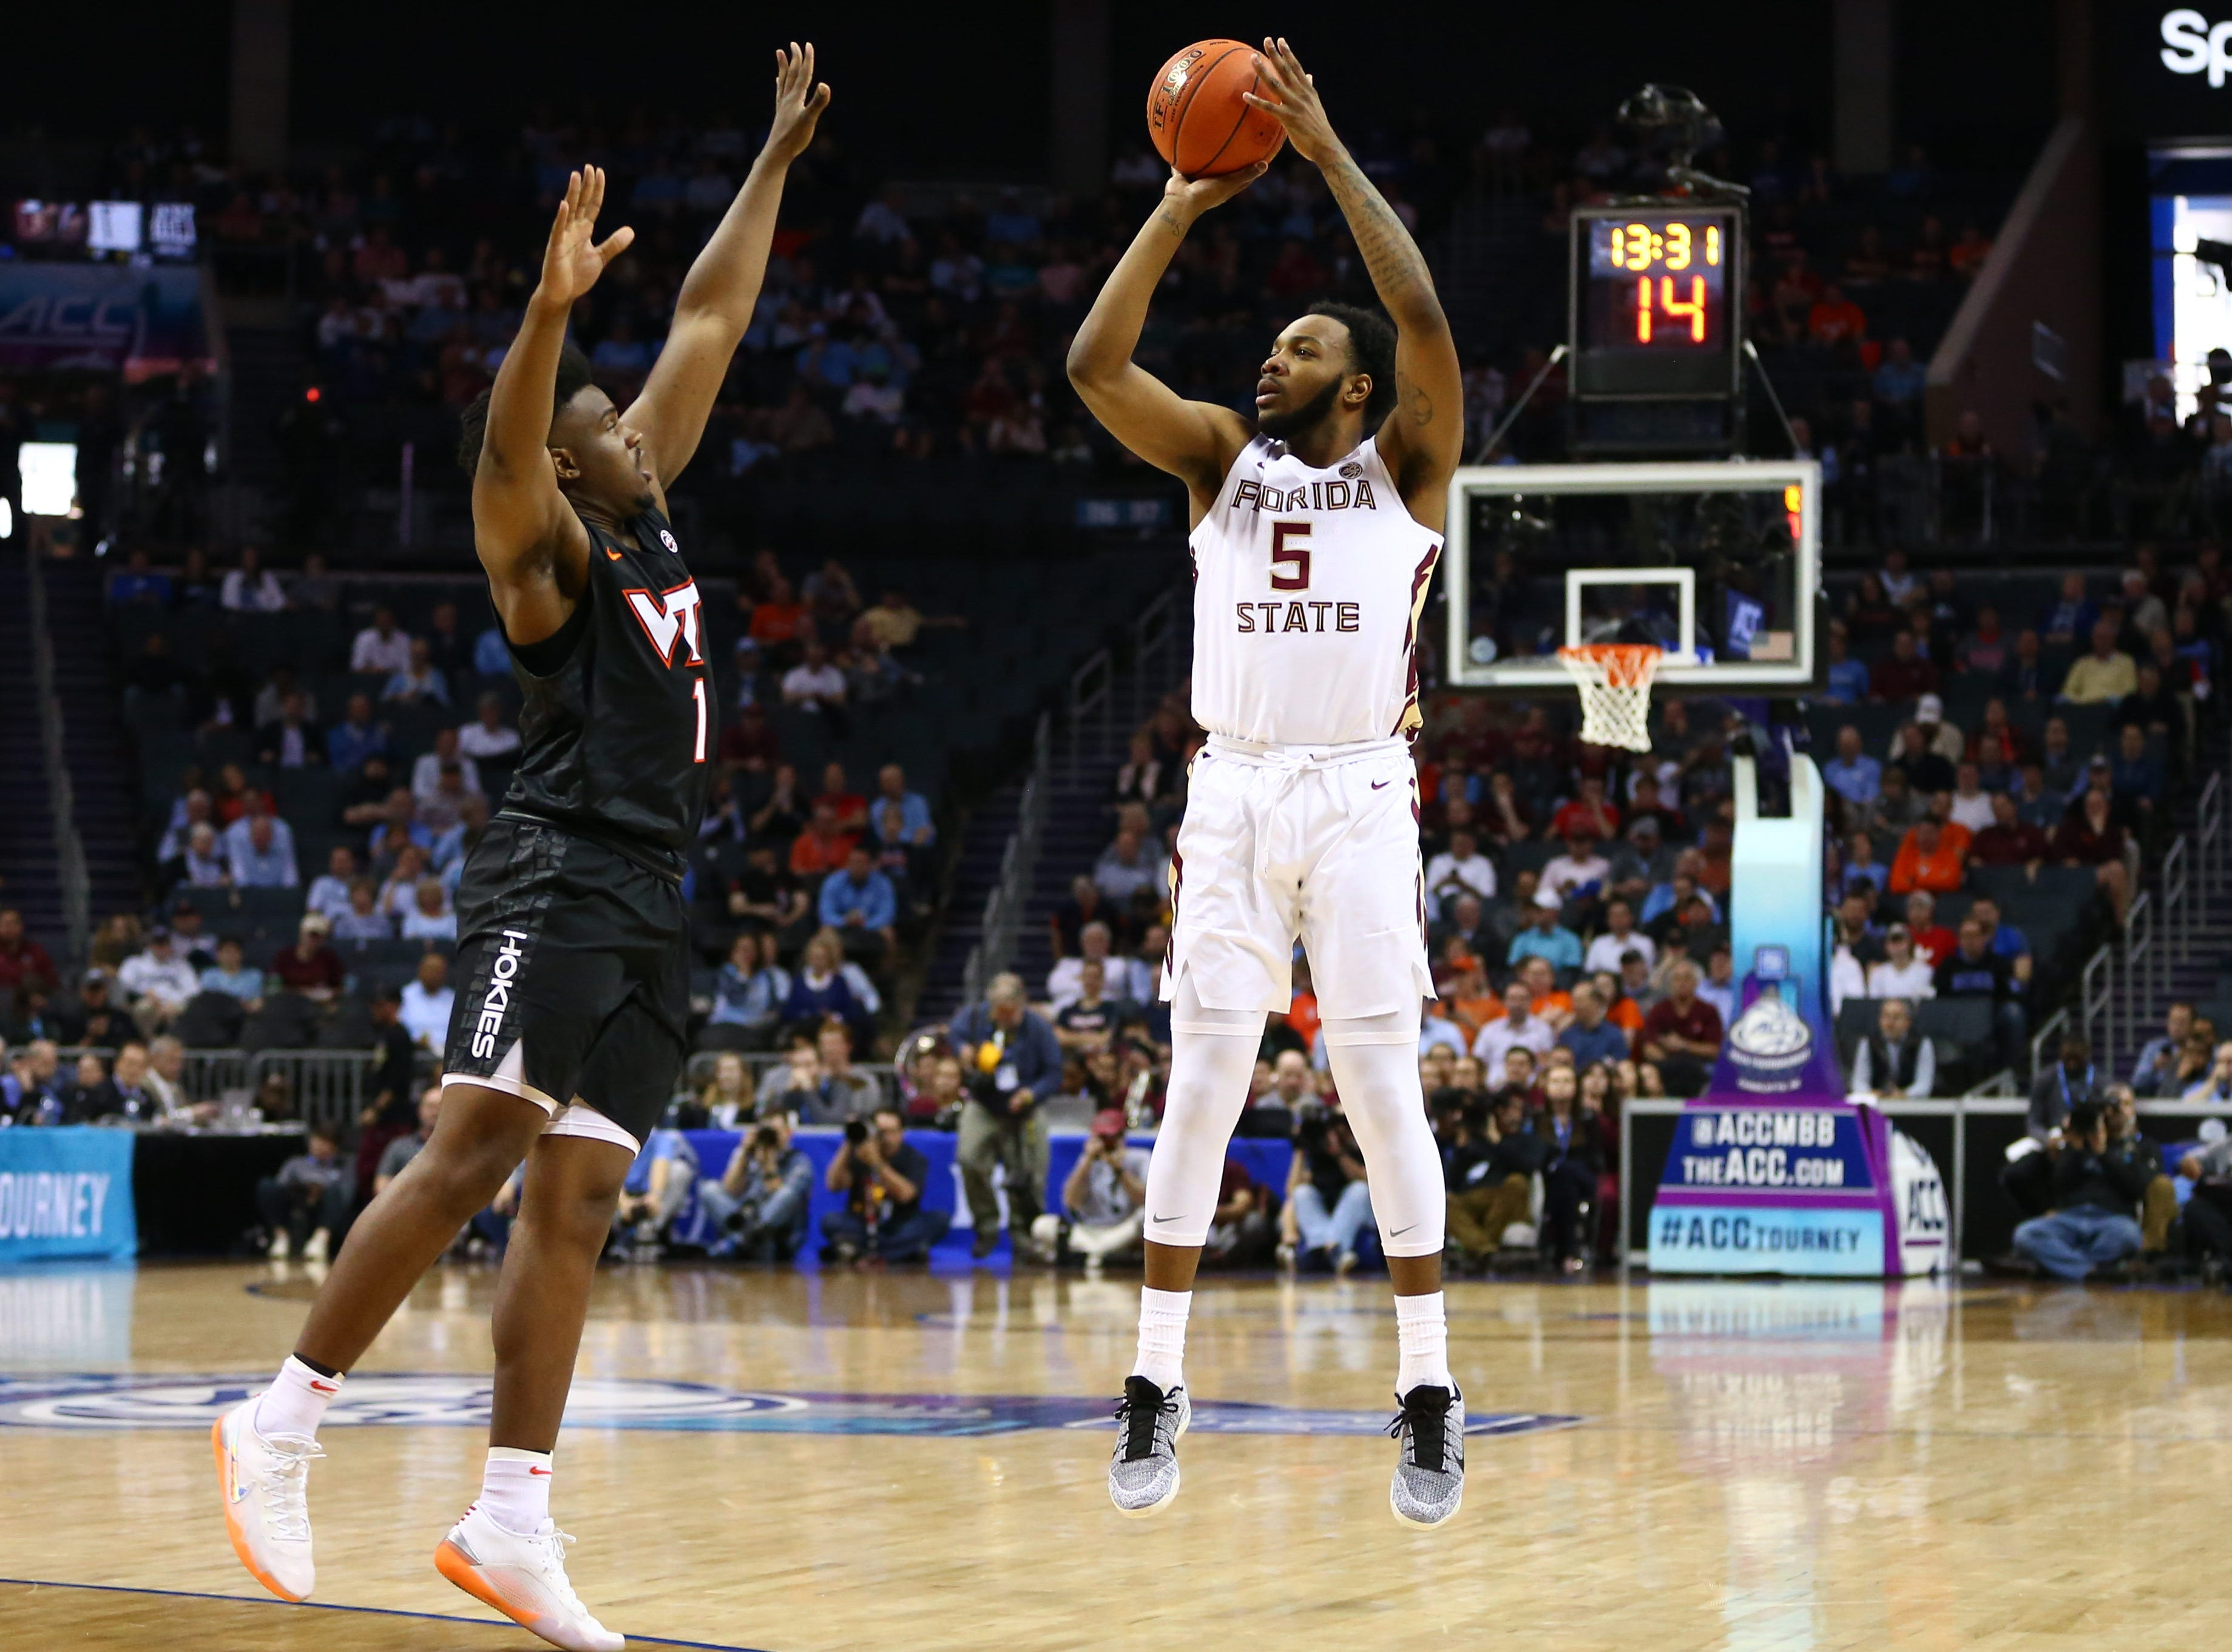 Mar 14, 2019; Charlotte, NC, USA; Florida State Seminoles guard PJ Savoy (5) shoots the ball against Virginia Tech Hokies guard Isaiah Wilkins (1) in the first half in the ACC conference tournament at Spectrum Center. Mandatory Credit: Jeremy Brevard-USA TODAY Sports